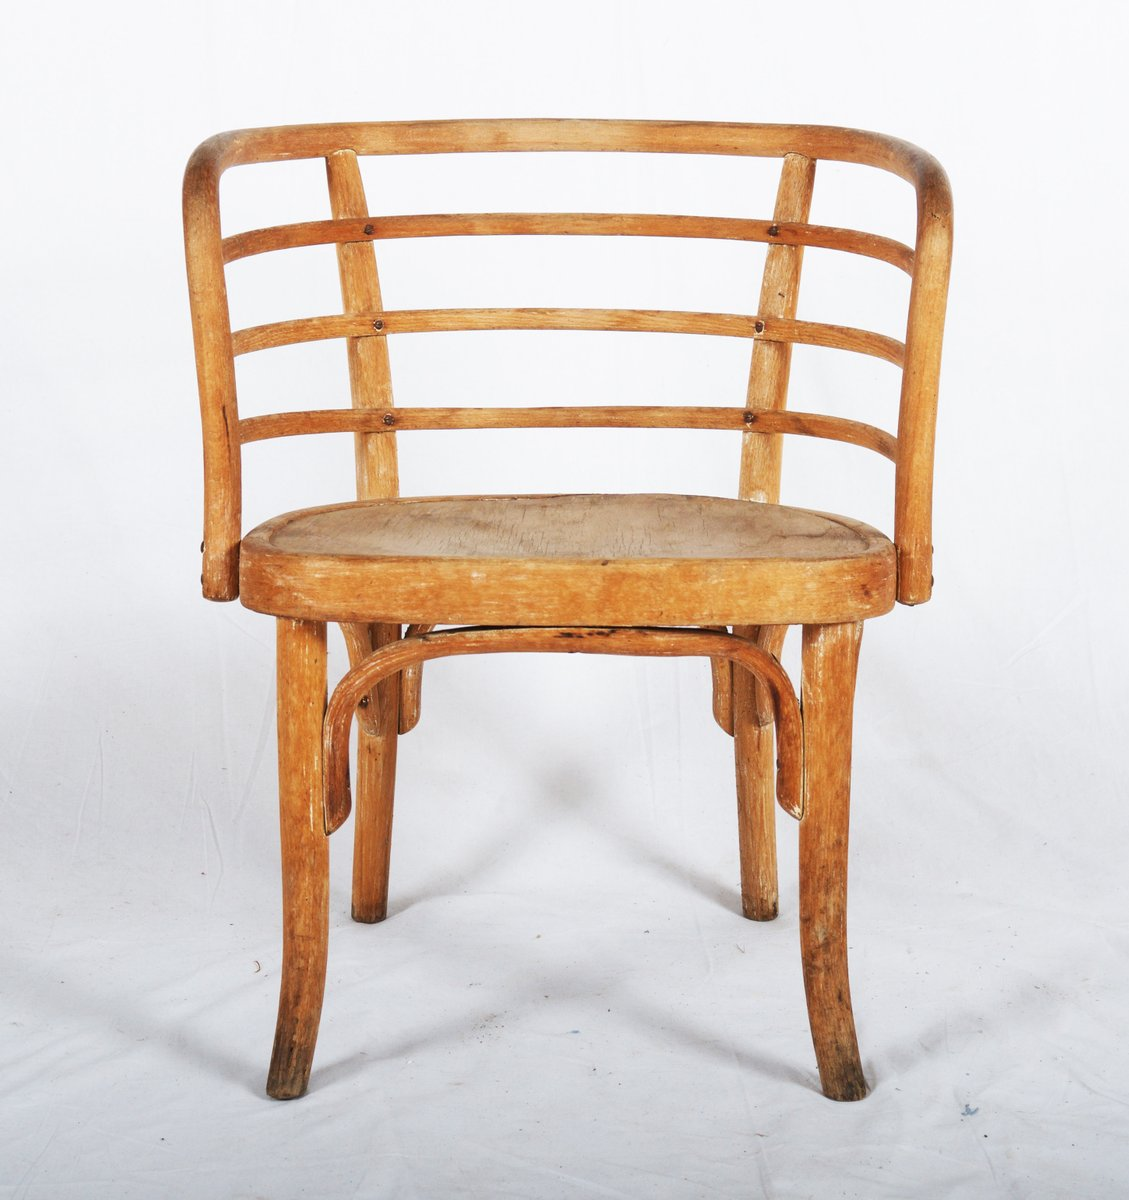 Beech Wood Armchair By Josef Frank For Thonet, 1930s For Sale At Pamono